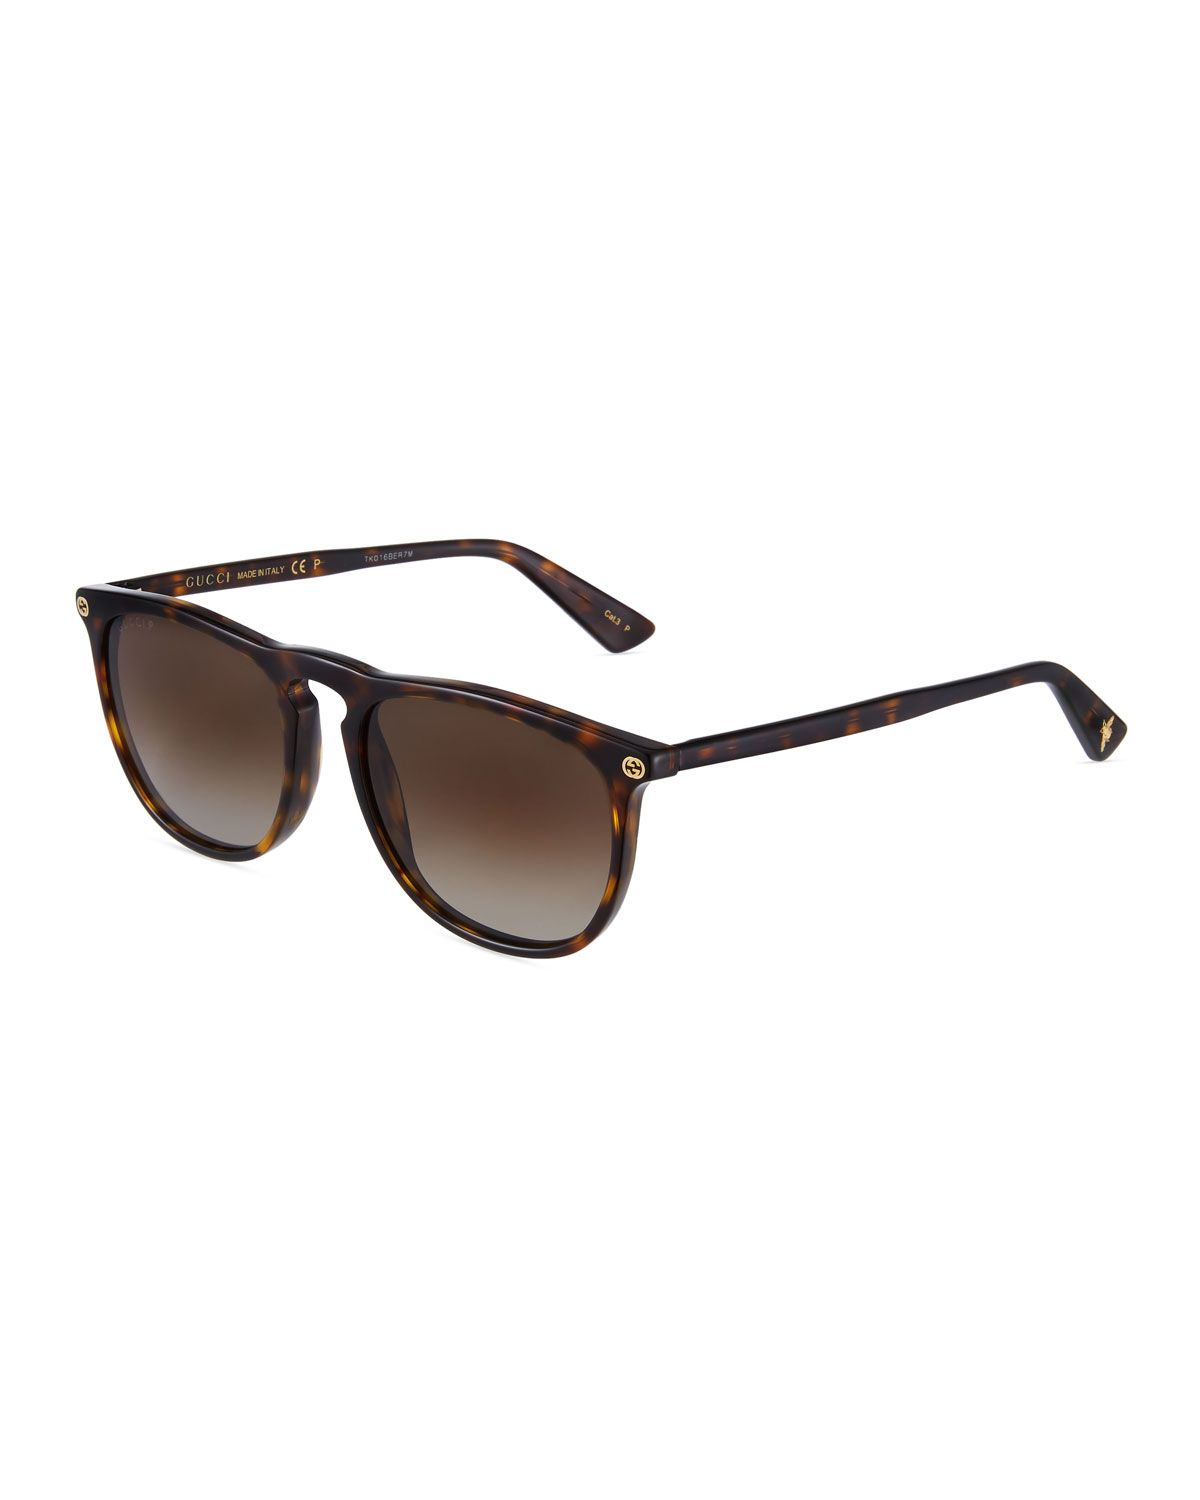 fdff19e406b GUCCI MEN S SQUARE ACETATE PANTOS SUNGLASSES.  gucci